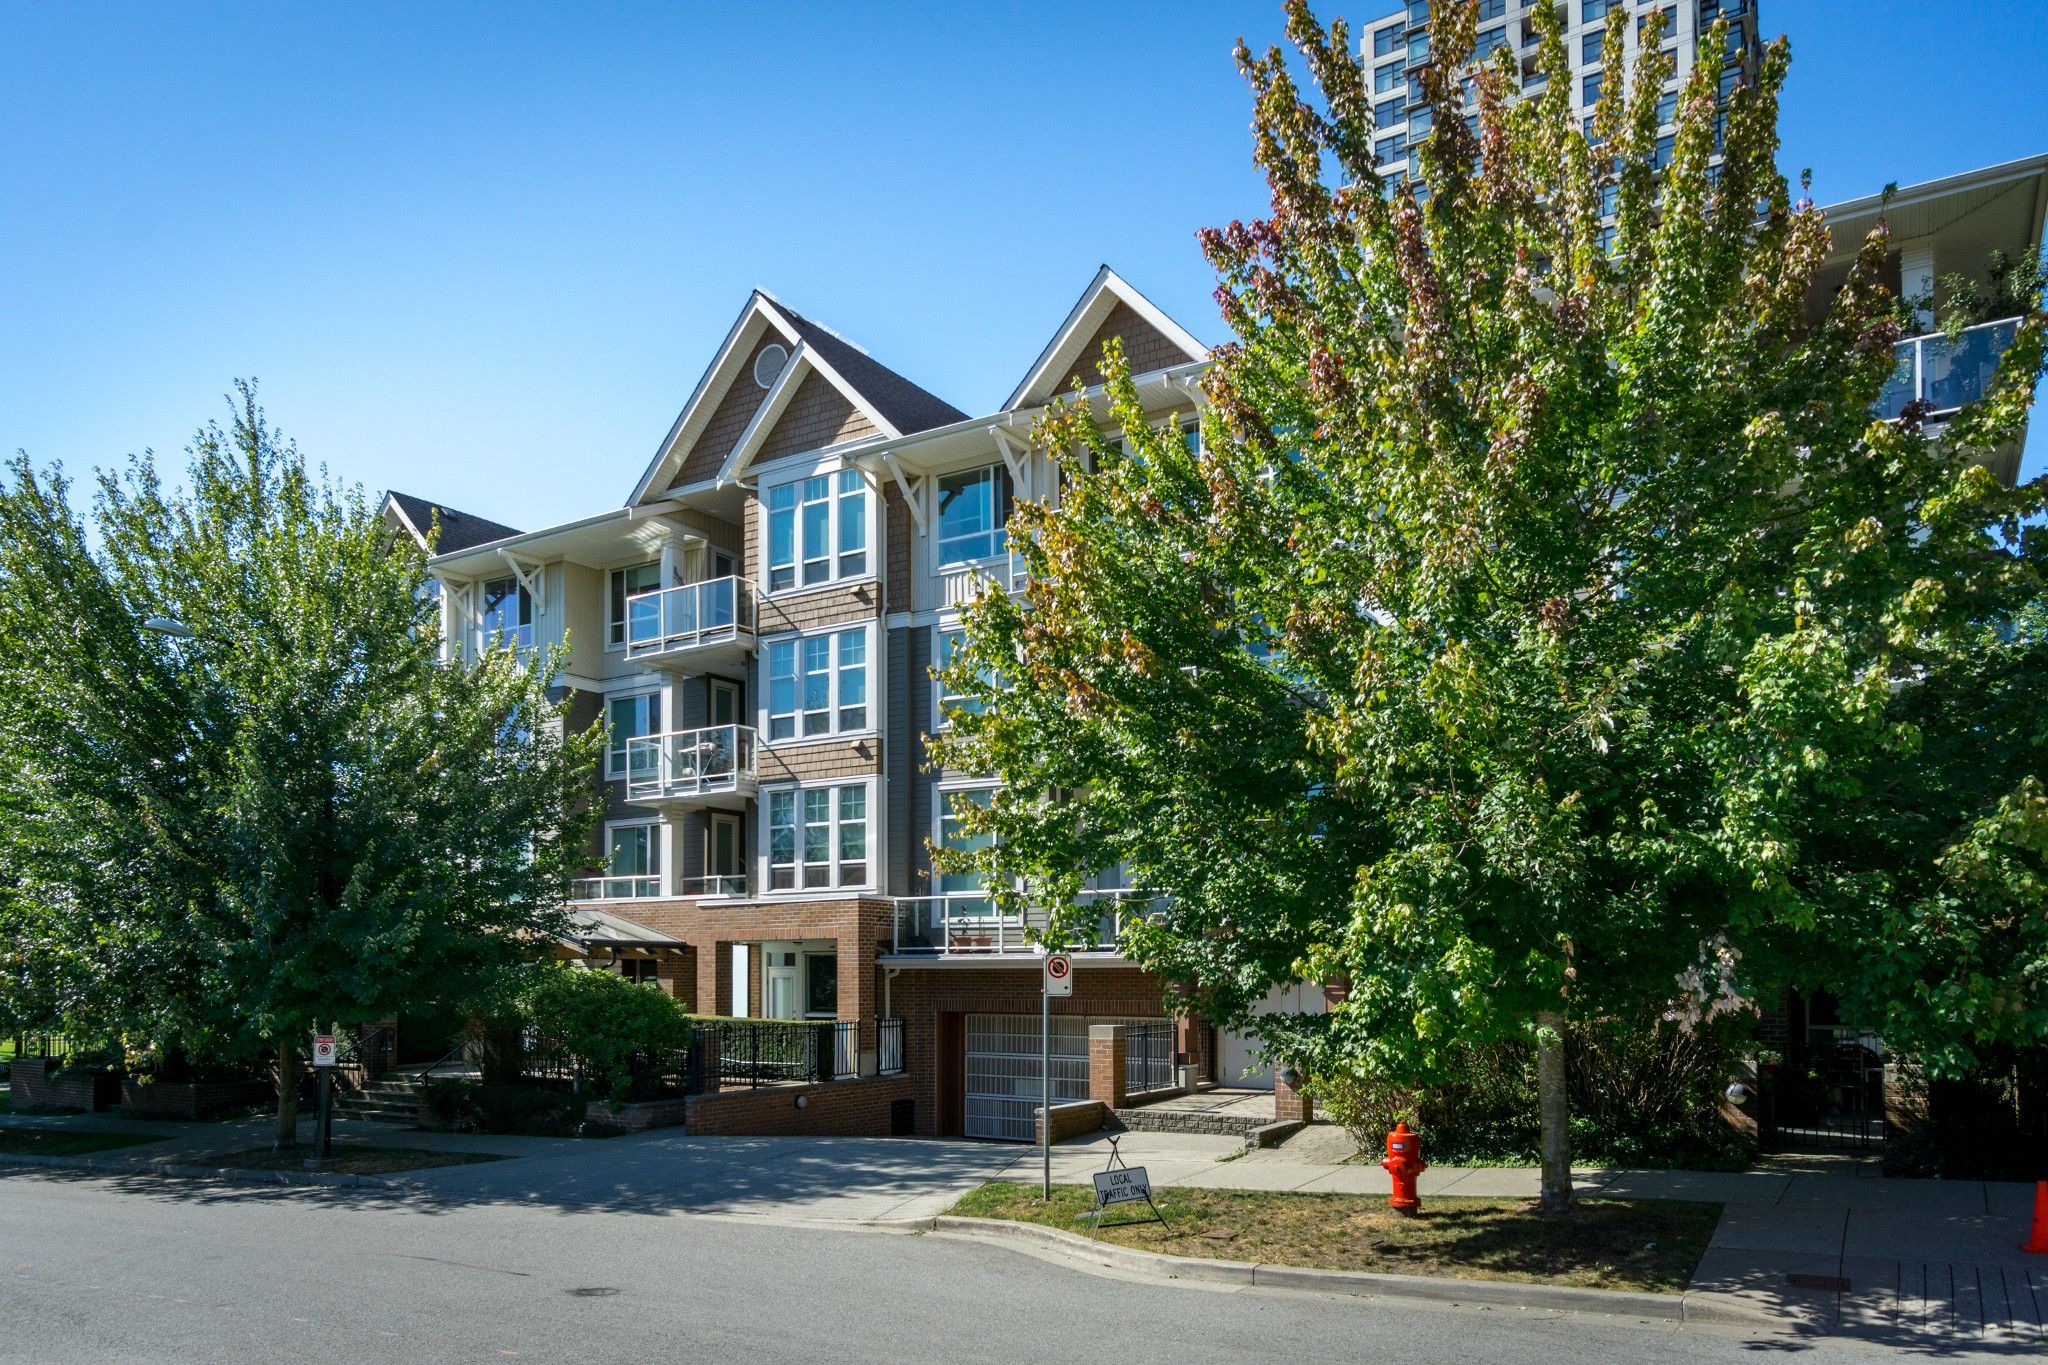 Photo 25: Photos: 208 3551 FOSTER Avenue in Vancouver: Collingwood VE Condo for sale (Vancouver East)  : MLS®# R2291555